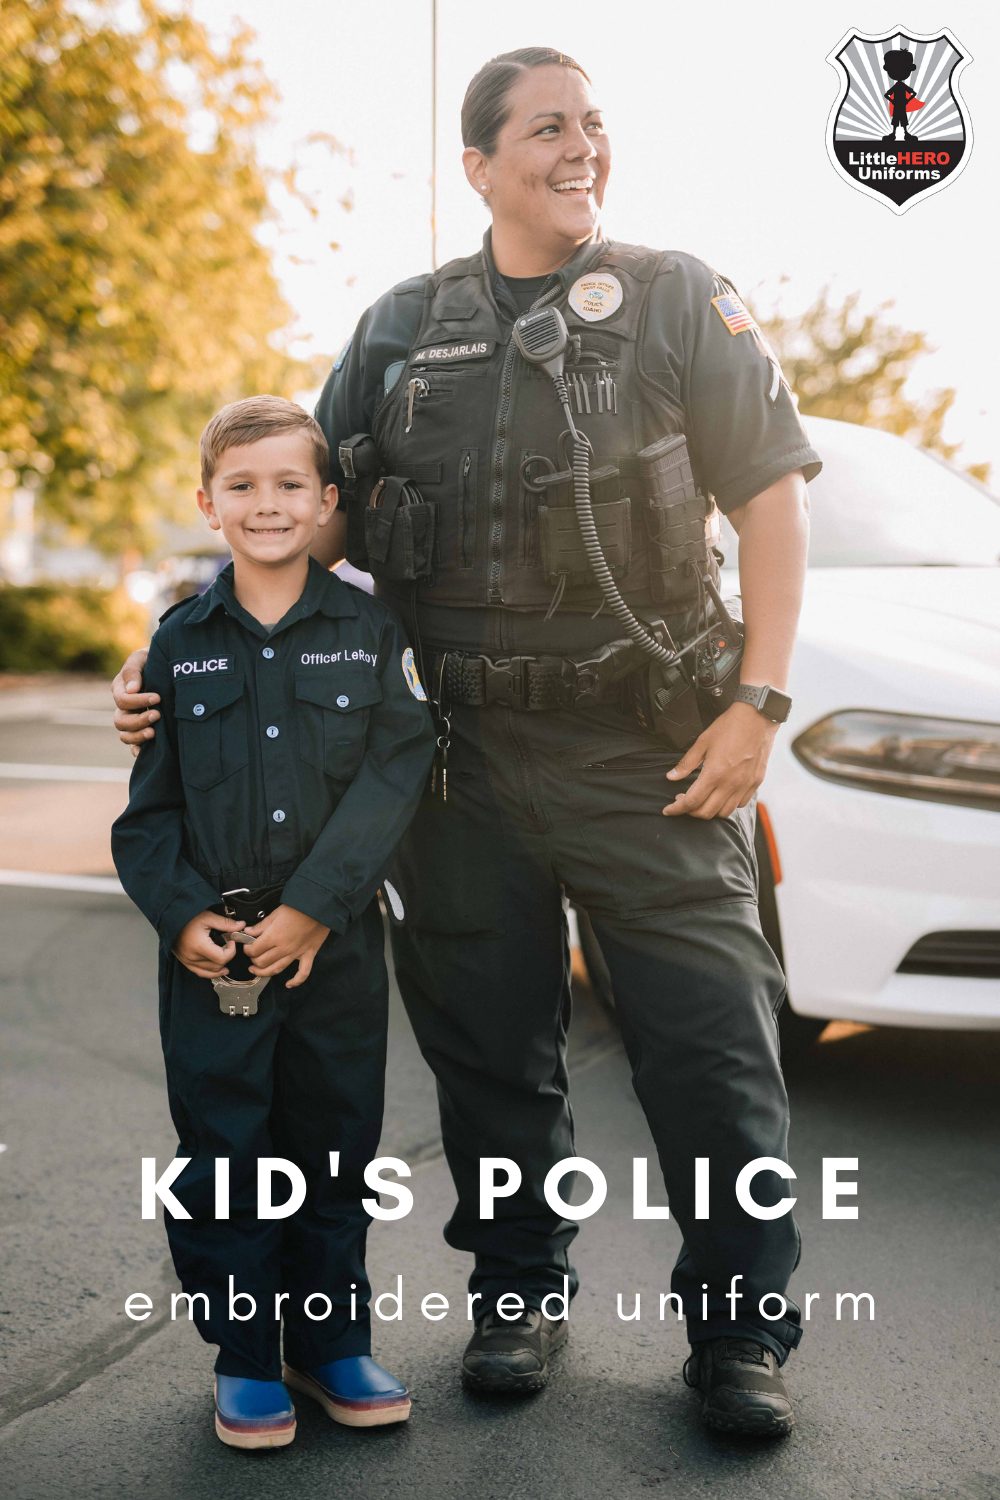 Authentic Personalized Kid S Police Costume Like The Real Uniform Police Costume Kids Kids Police Police Uniform For Kids